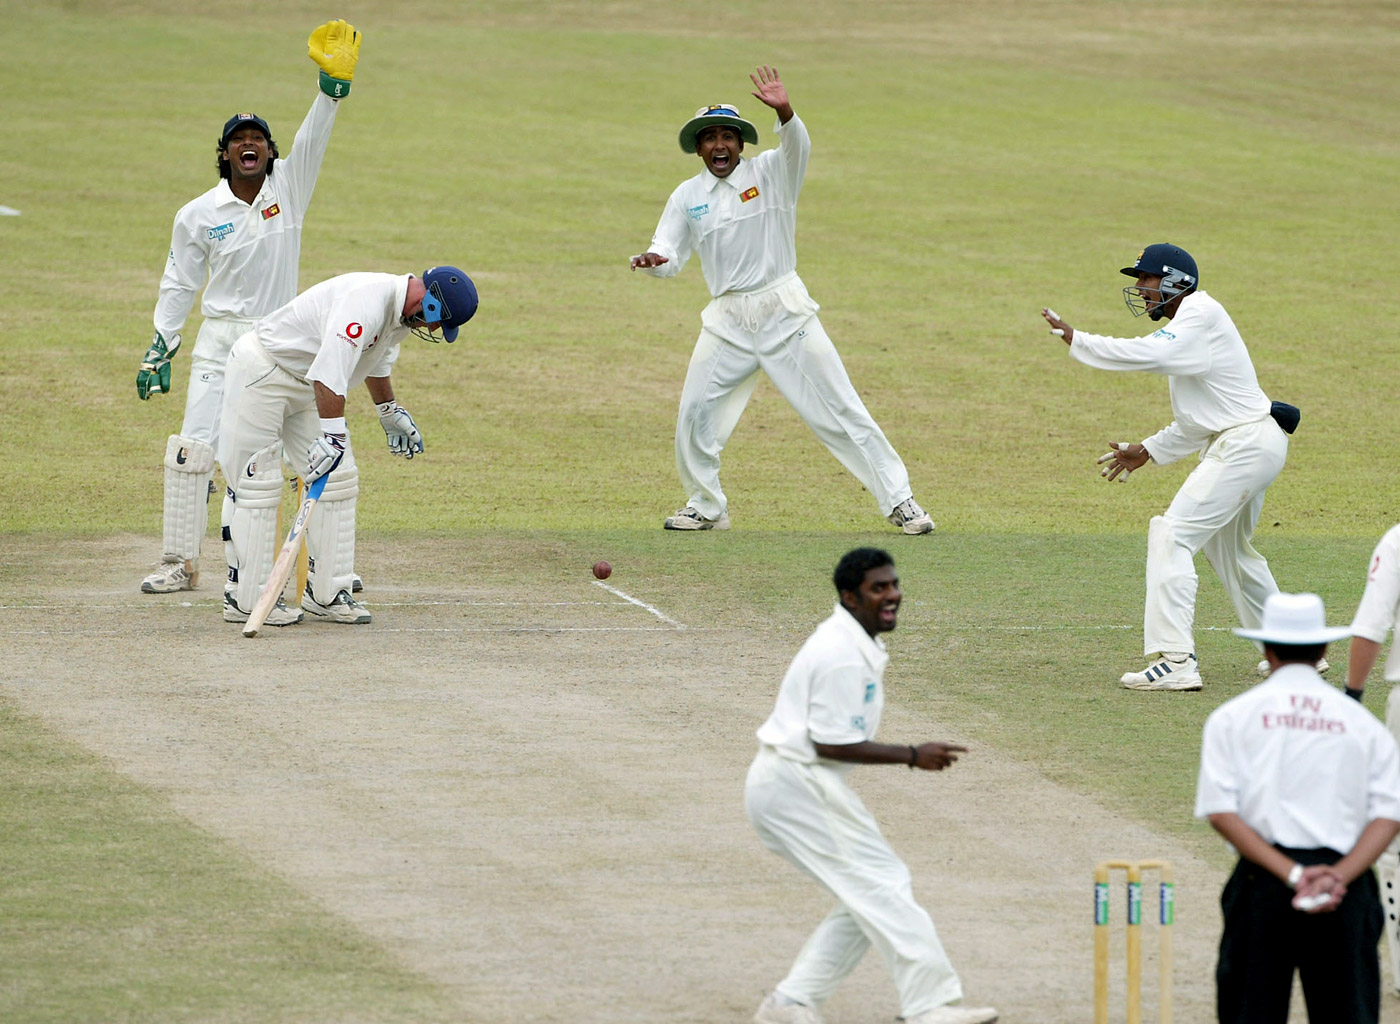 Muttiah Muralitharan and Sri Lanka appeal for a wicket in Kandy, 2003